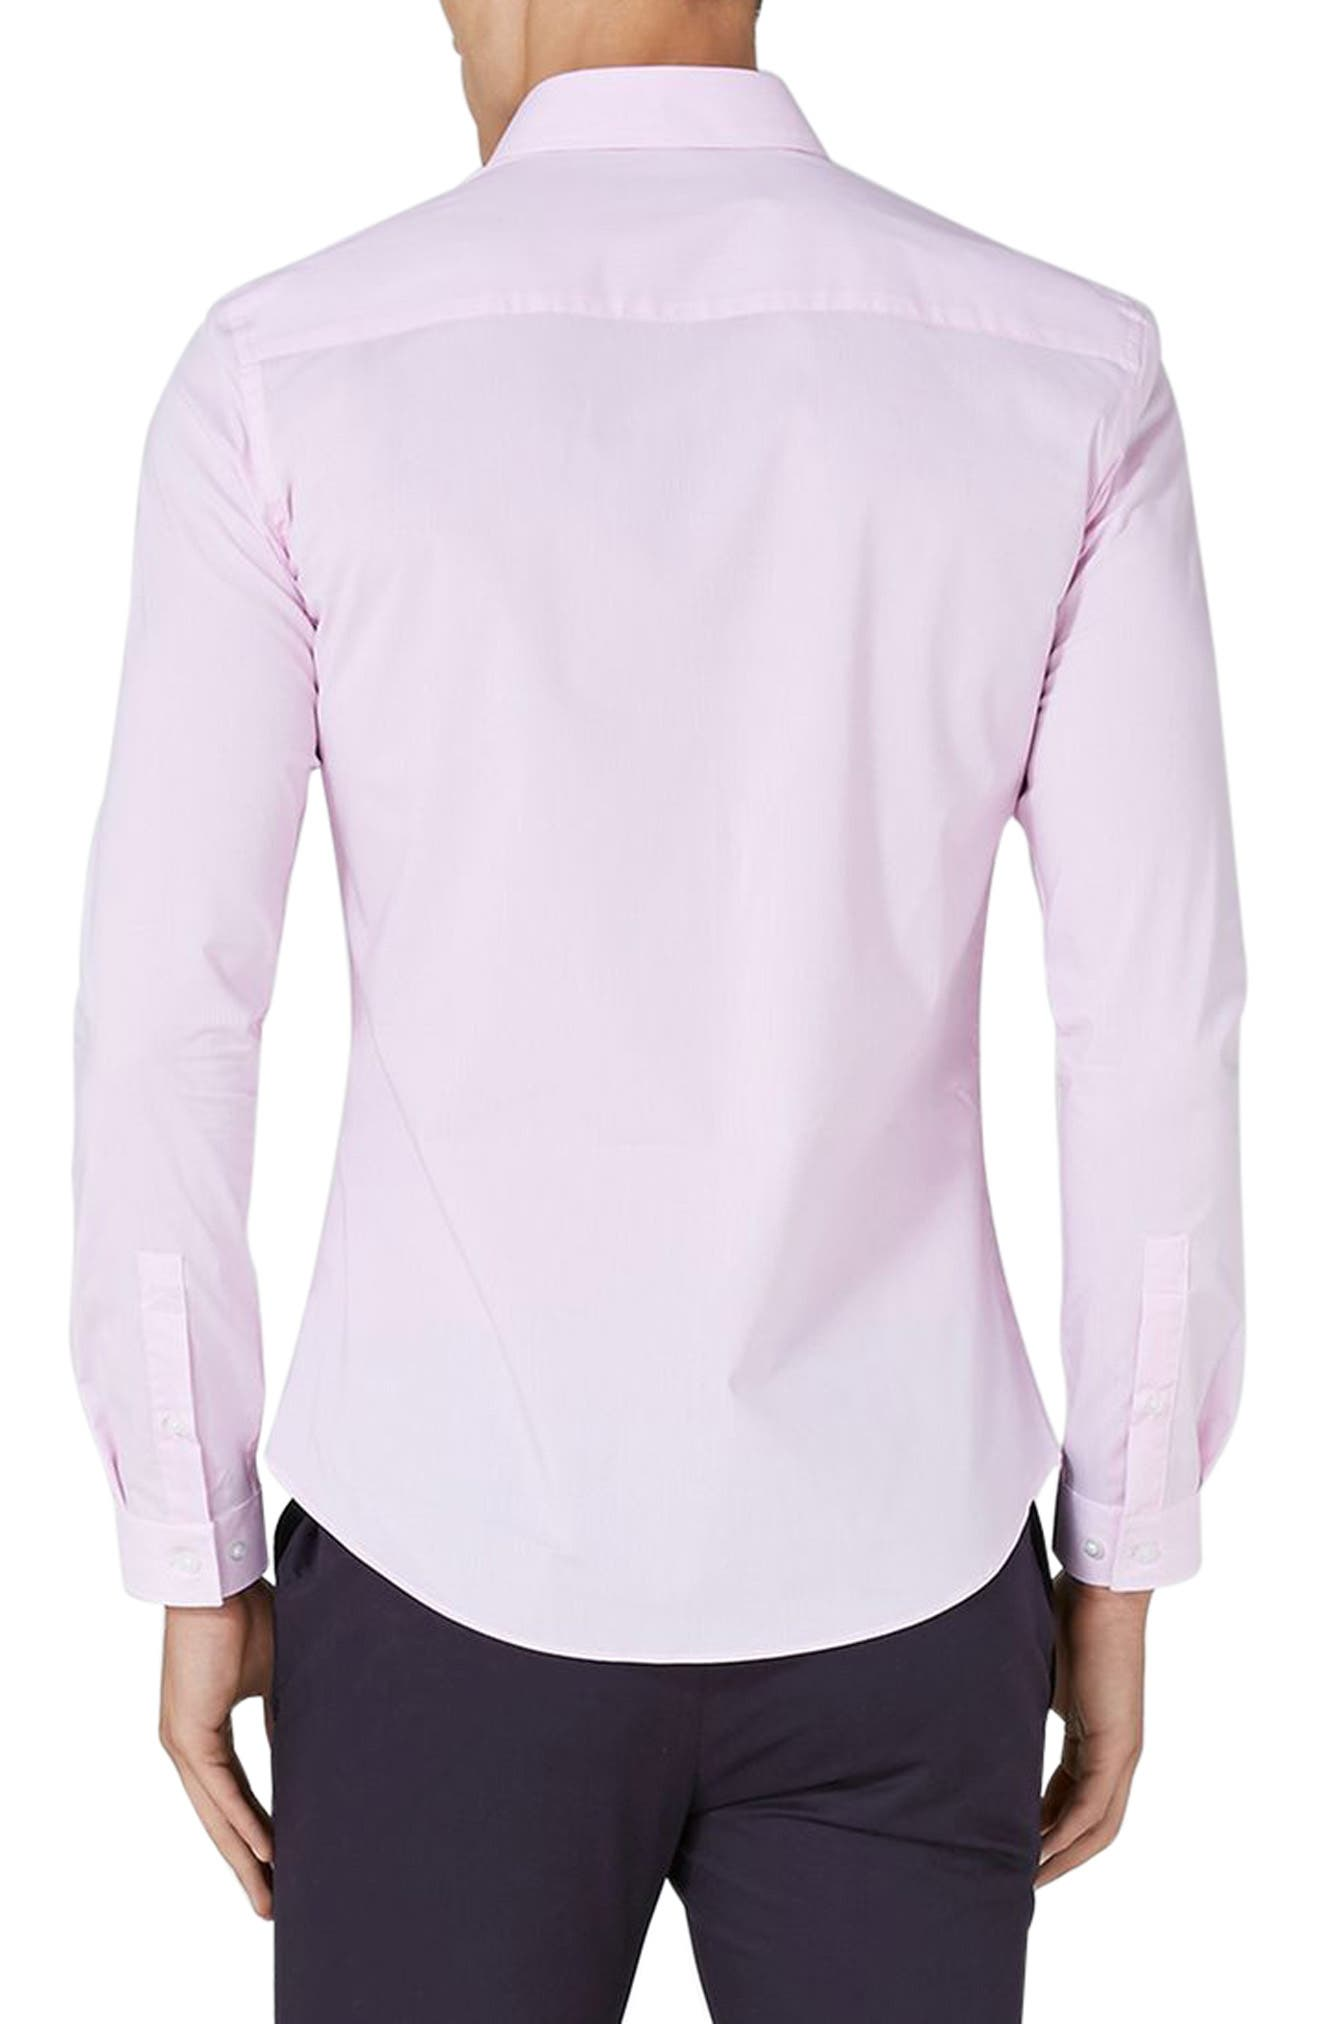 Muscle Fit Smart Shirt,                             Alternate thumbnail 3, color,                             Pink Multi